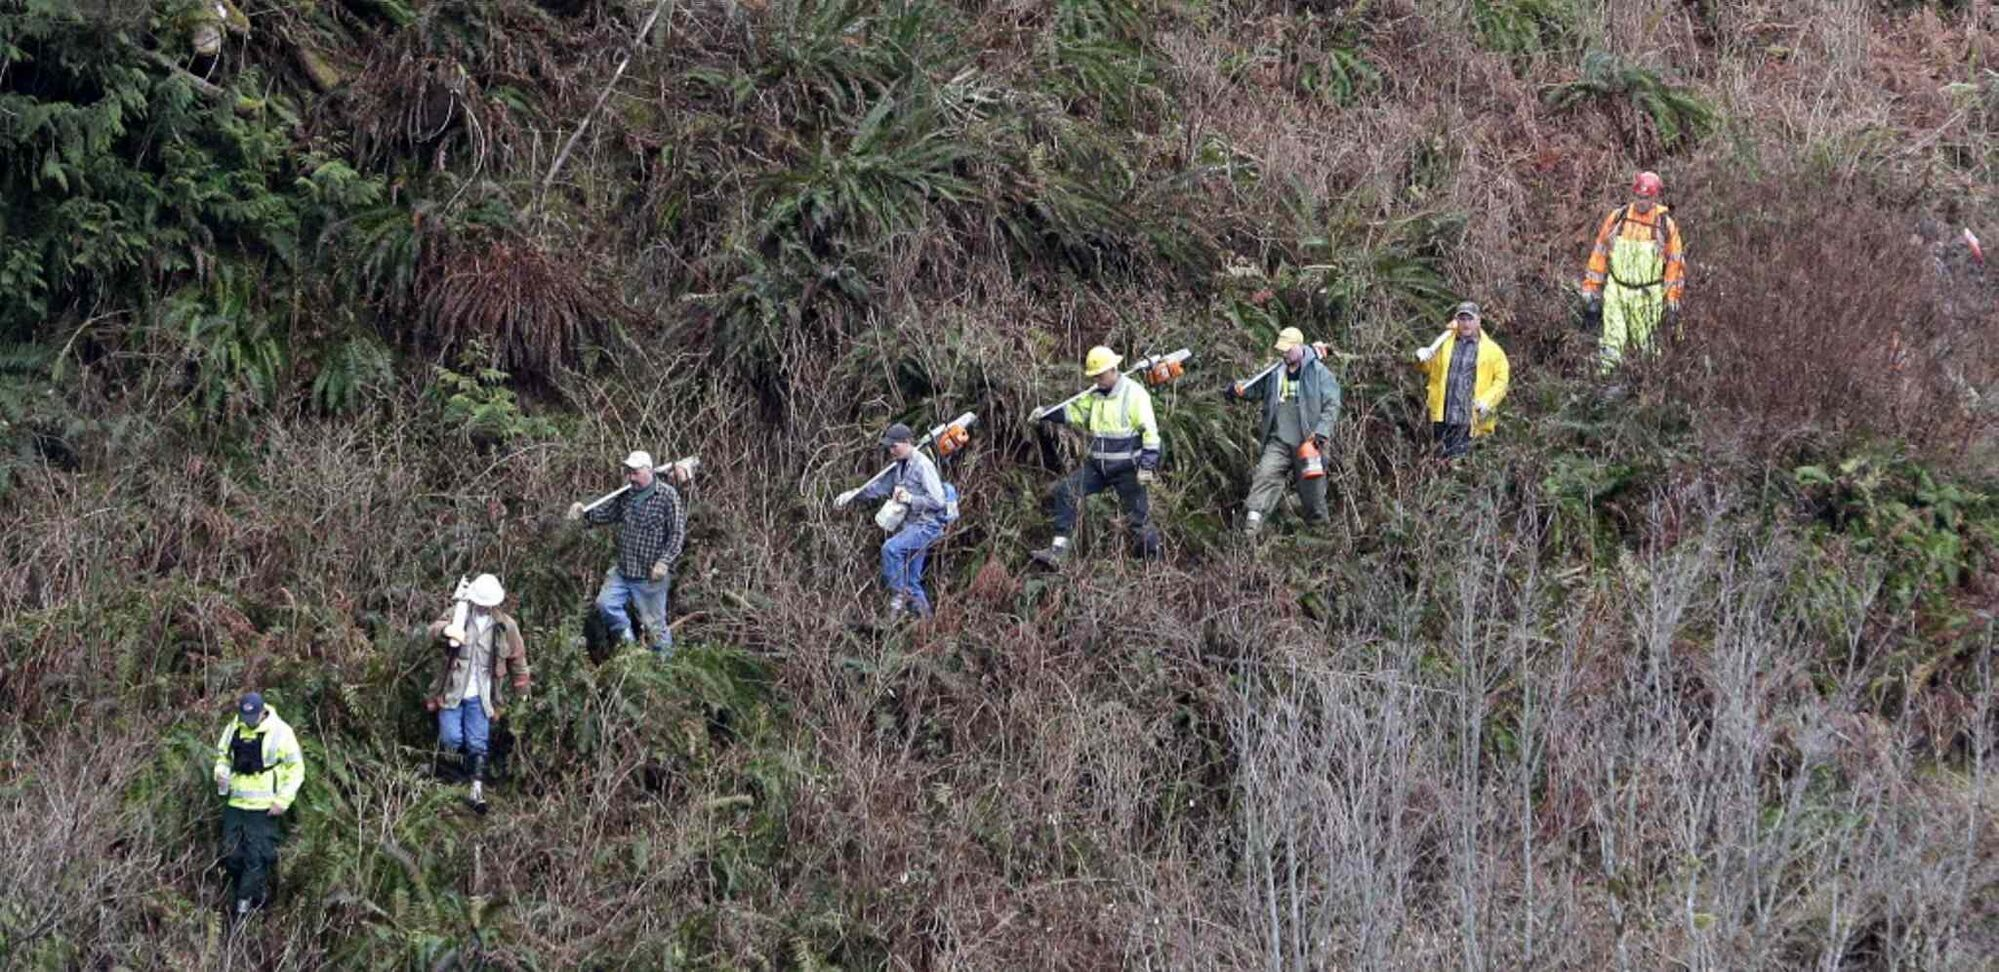 Volunteers with chainsaws march down a rugged path toward the scene of the deadly mudslide that hit Saturday.  (Elaine Thompson / The Associated Press )